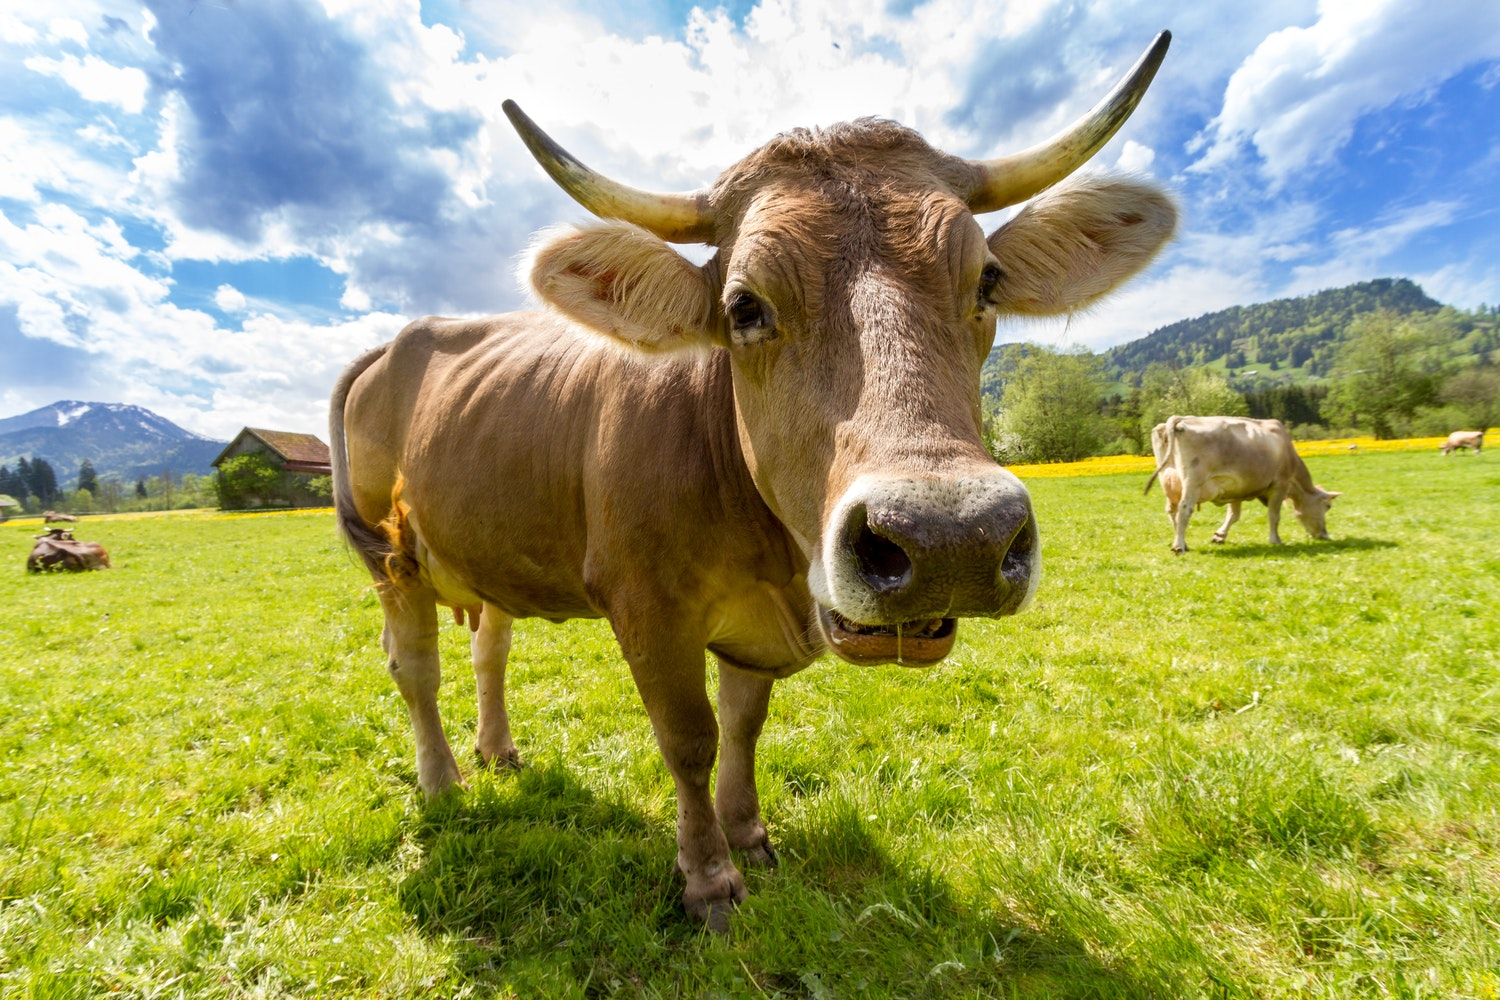 Find Related Colors 81 Peaceful Cow Pictures 183 Pexels 183 Free Stock Photos